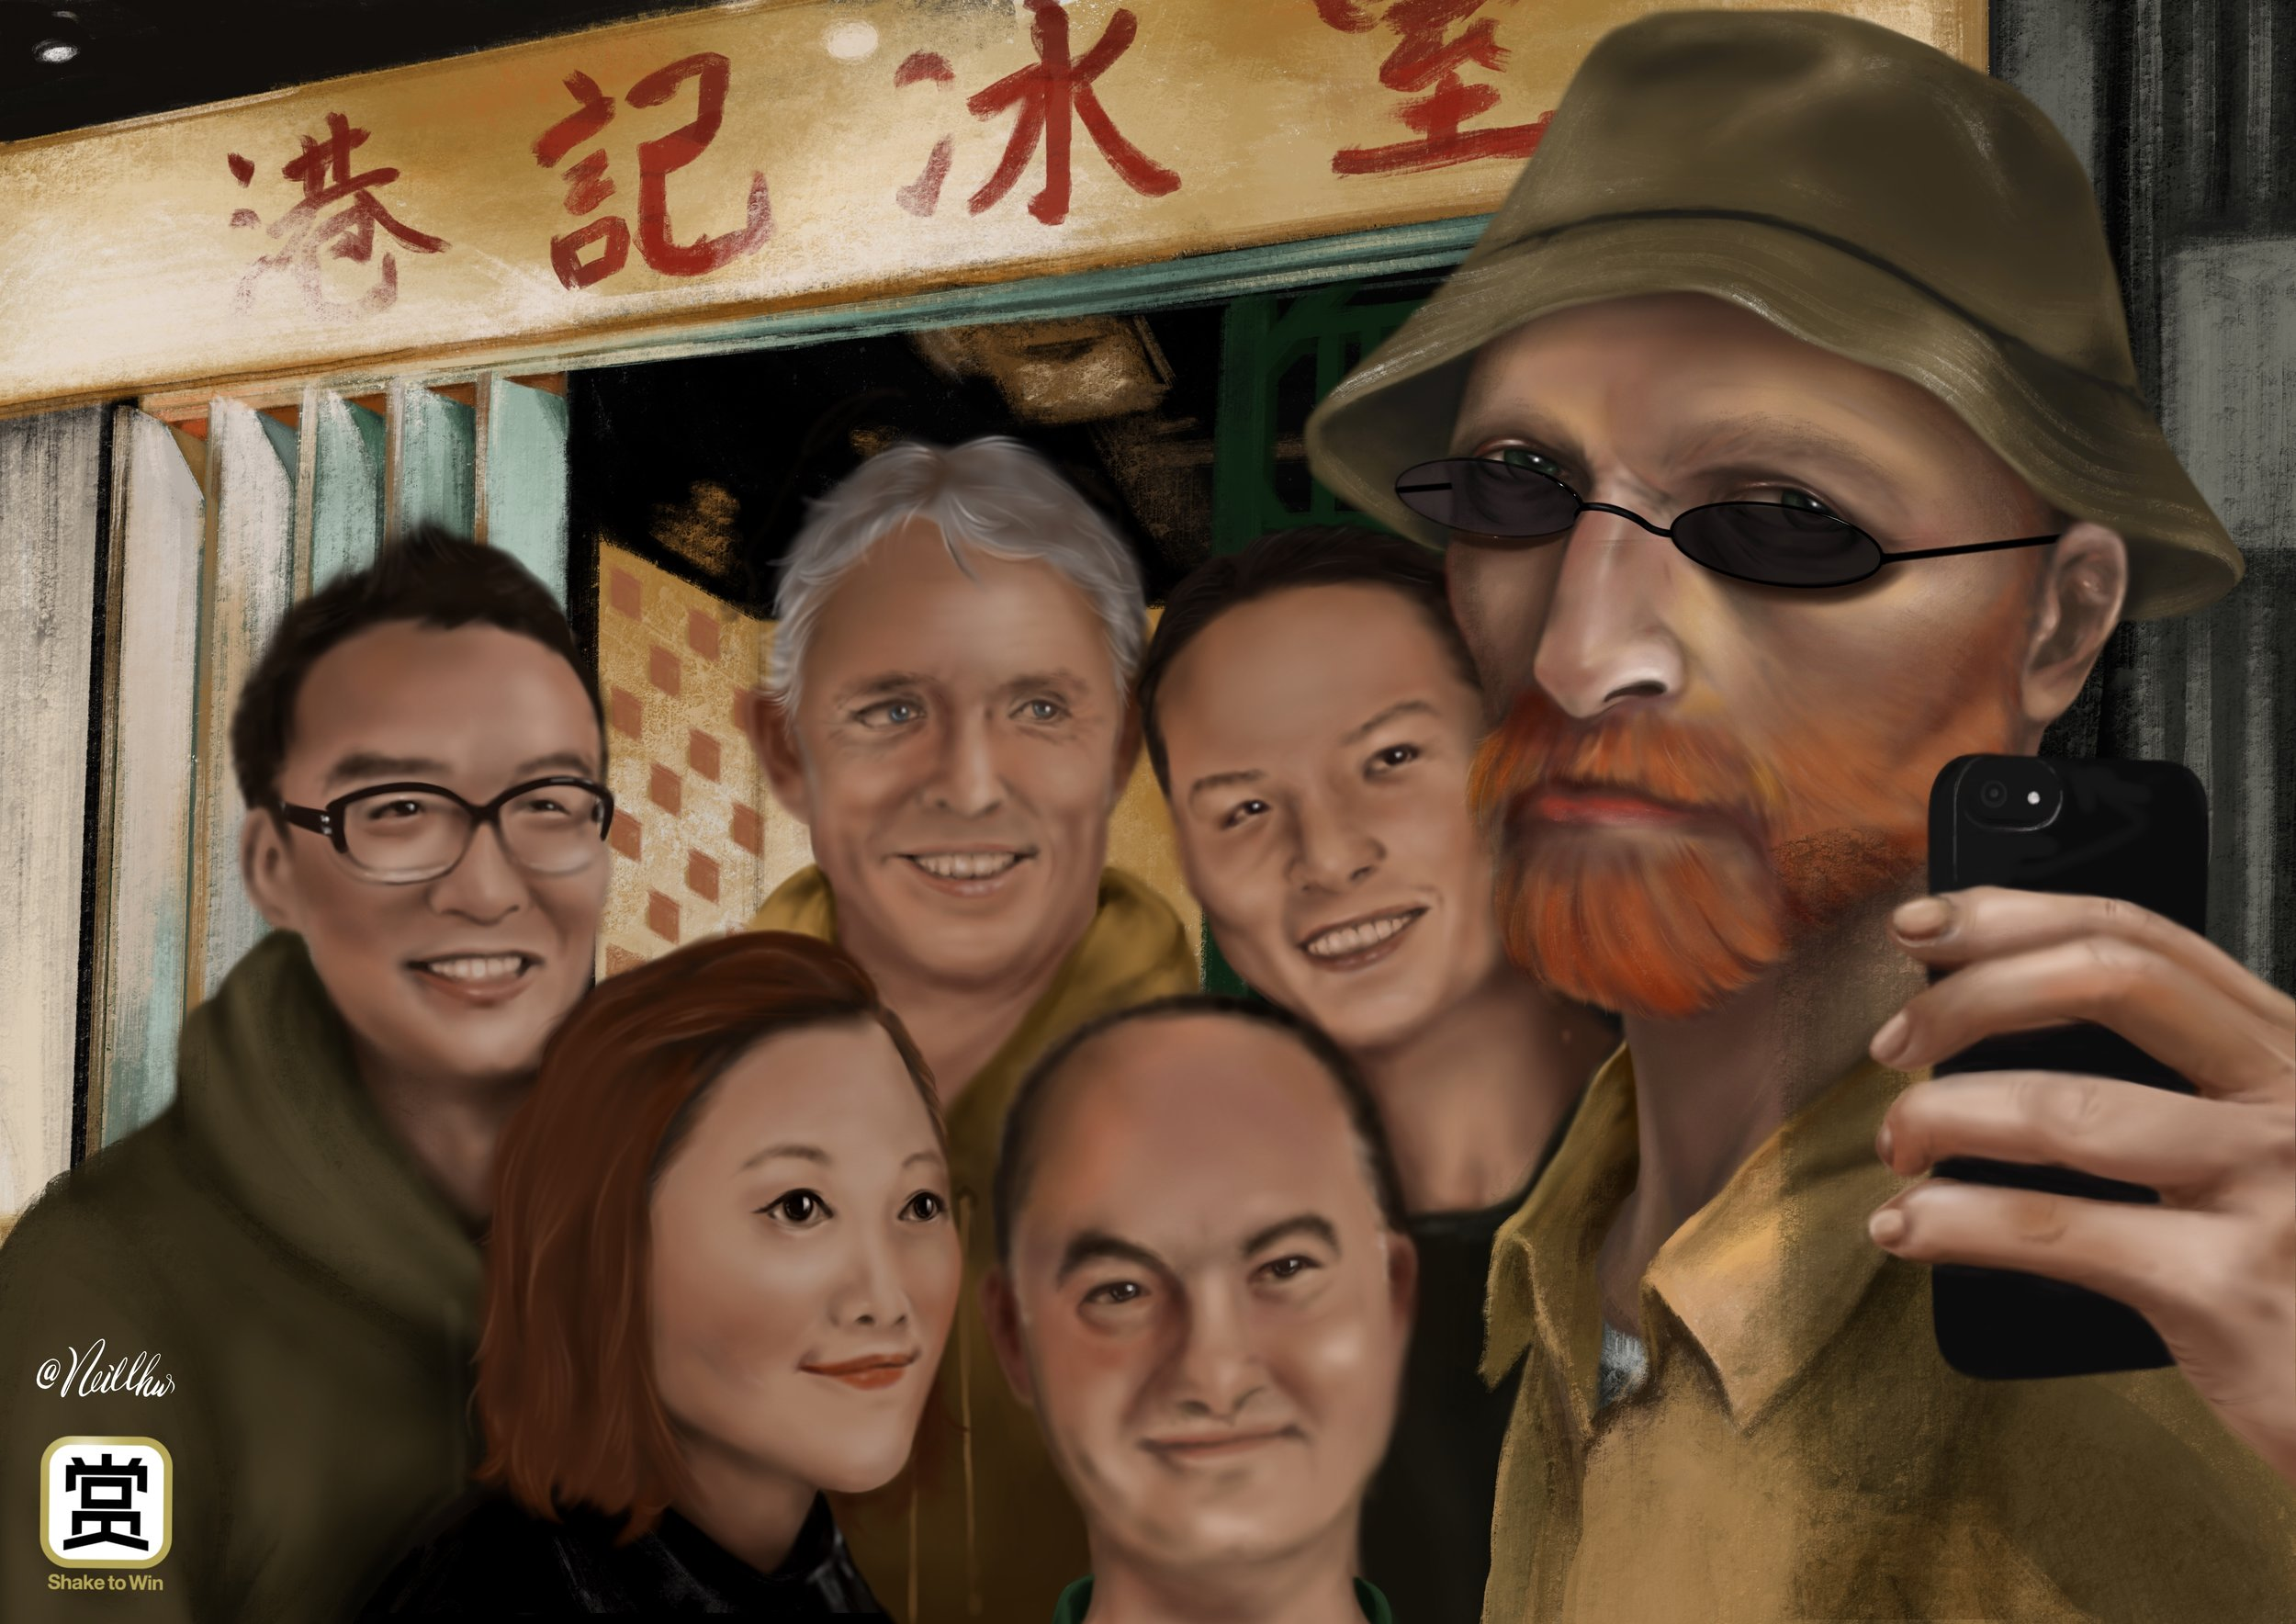 Van Gogh's secret trip to HK - Shake To Win _ Neillhw